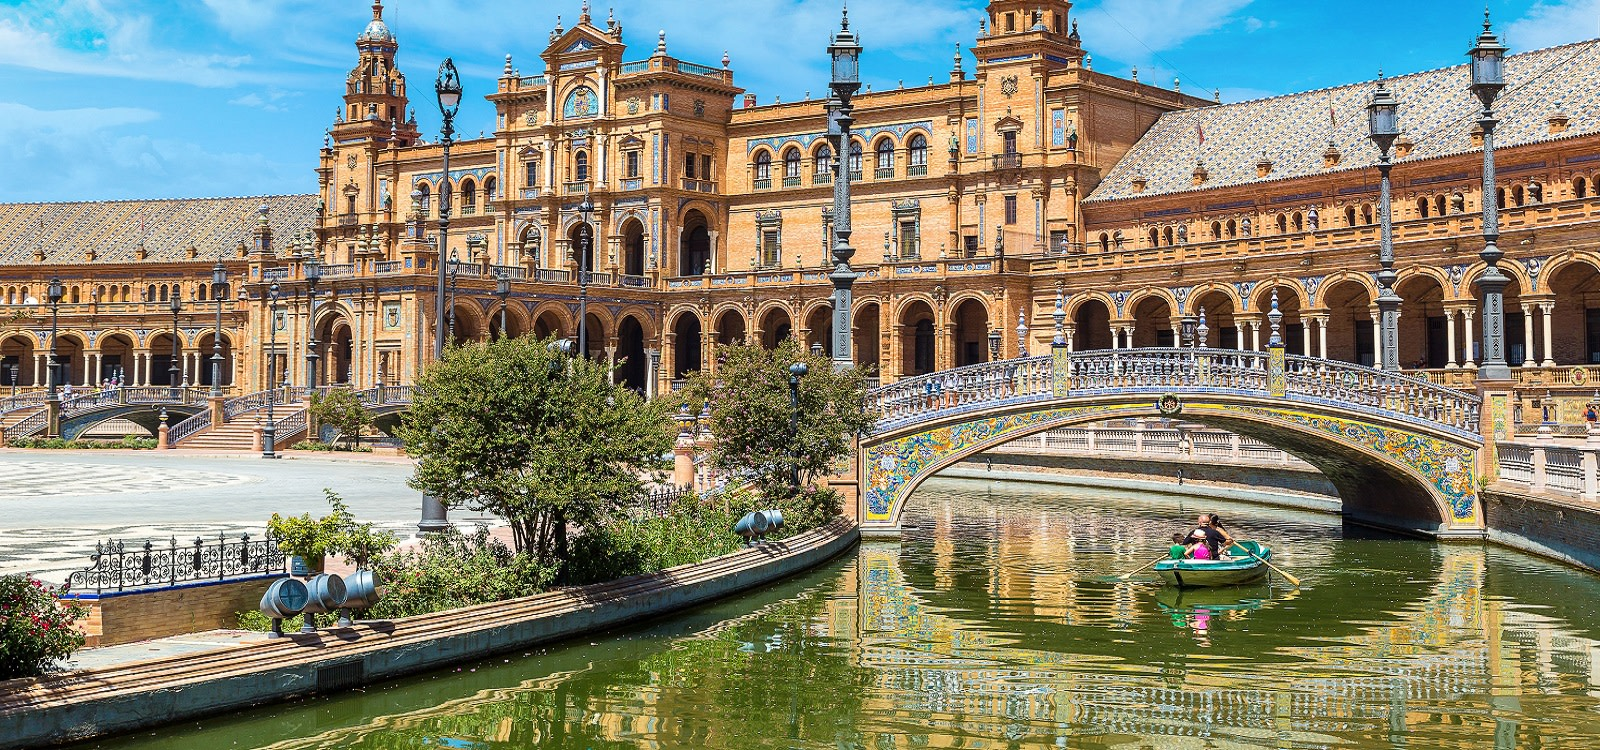 Things to do in Spain - boating in Seville